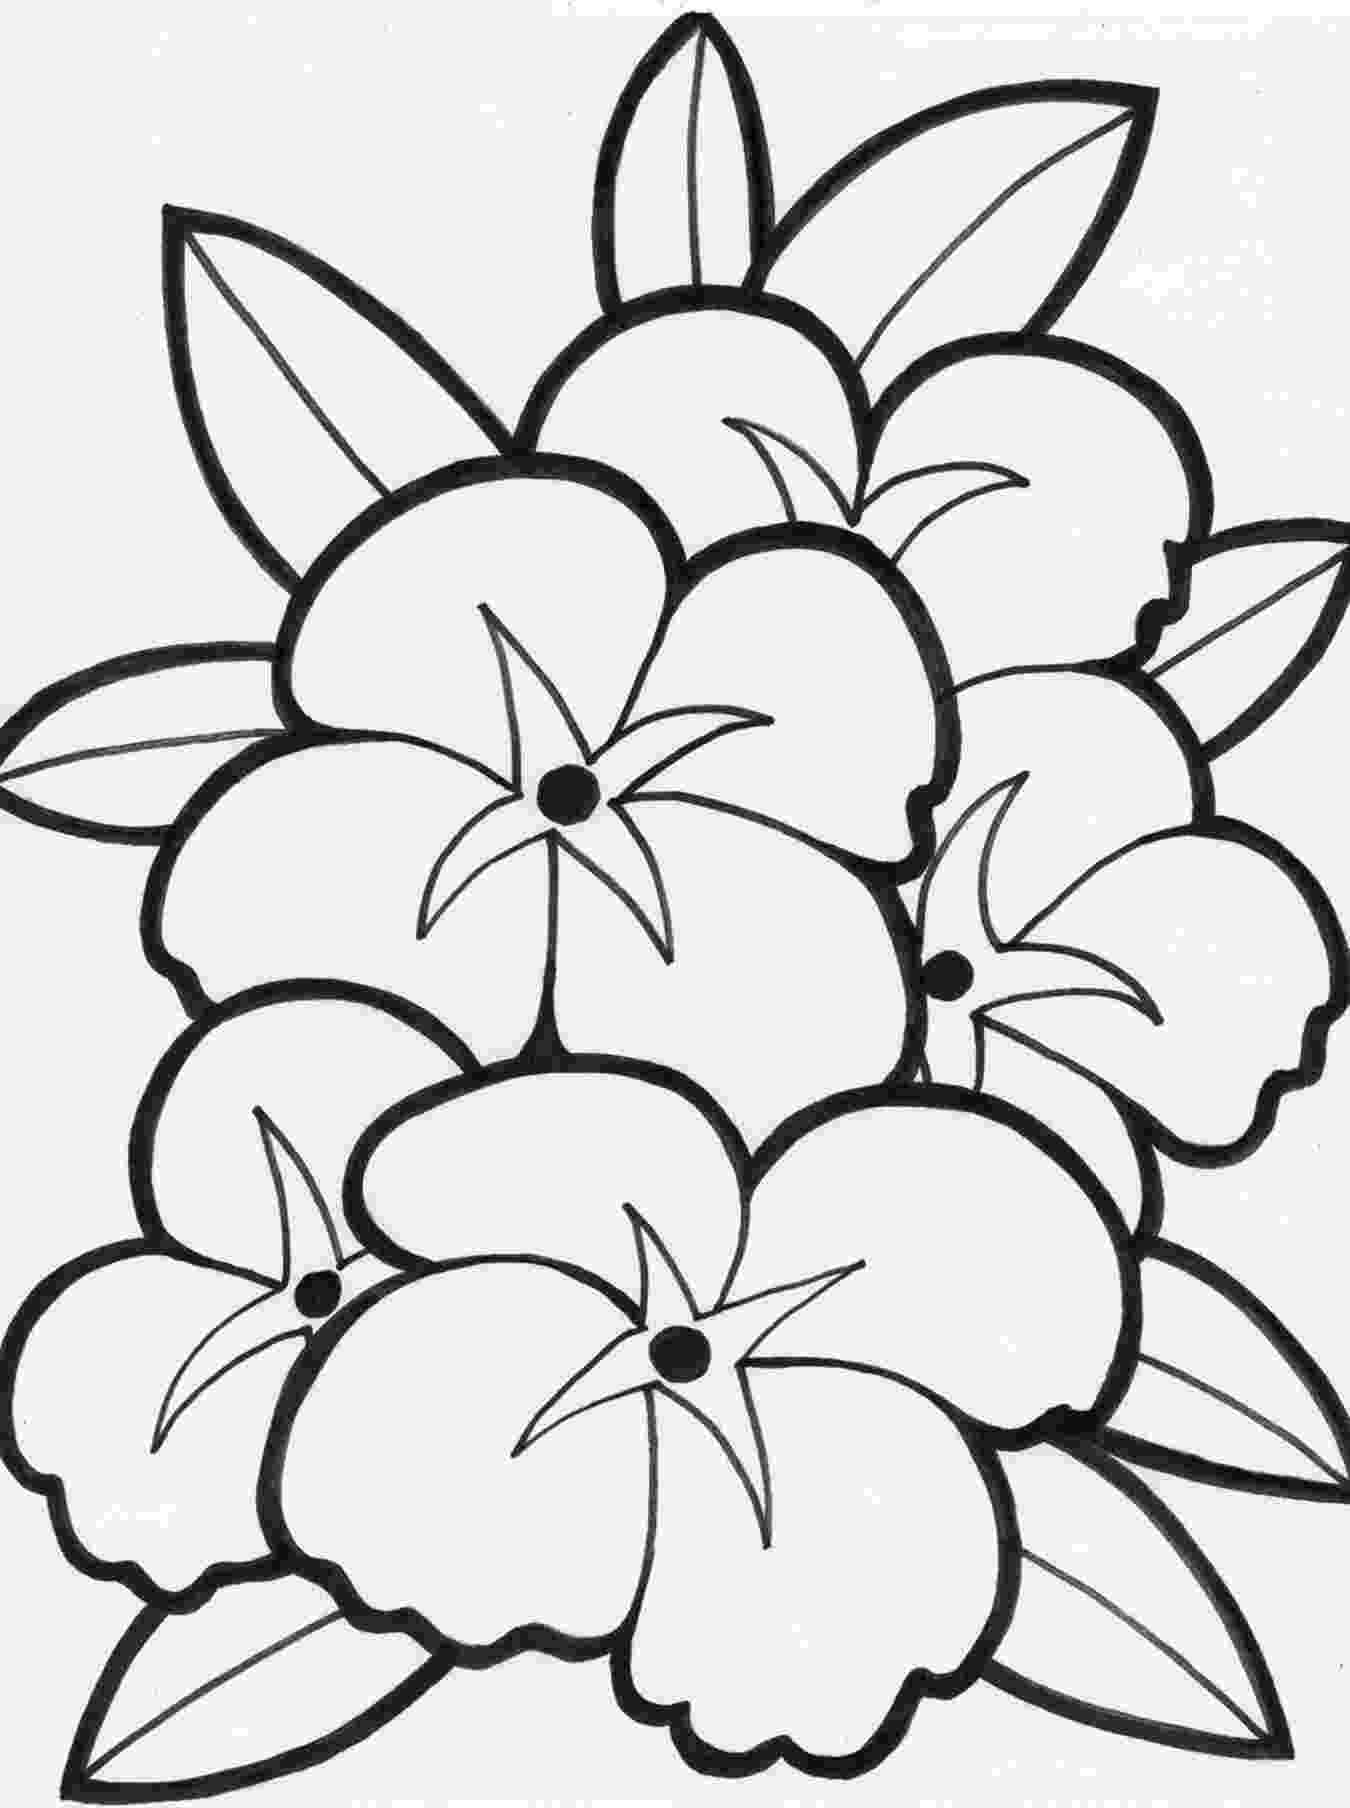 flower images to color free printable flower coloring pages for kids best to images flower color